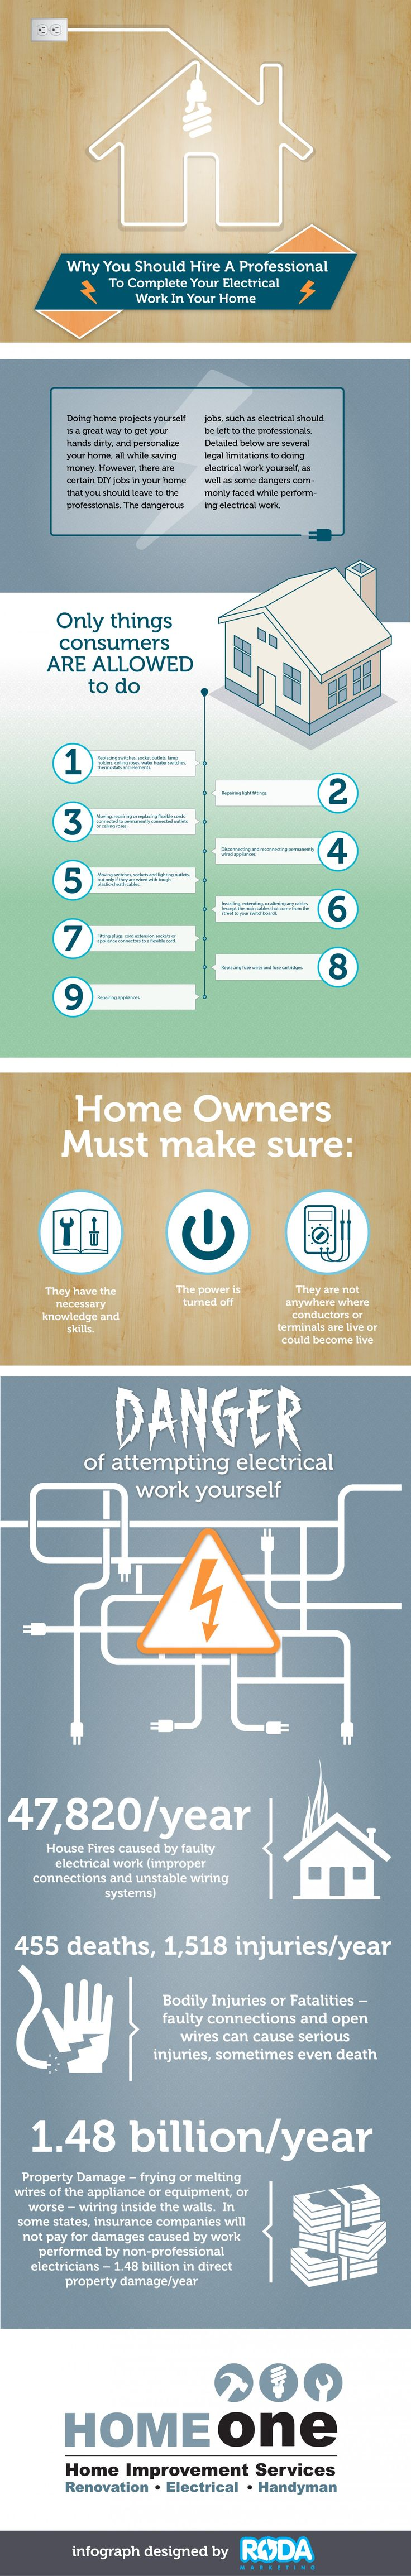 Best 29 Electrical Services ideas on Pinterest | Electrical work ...